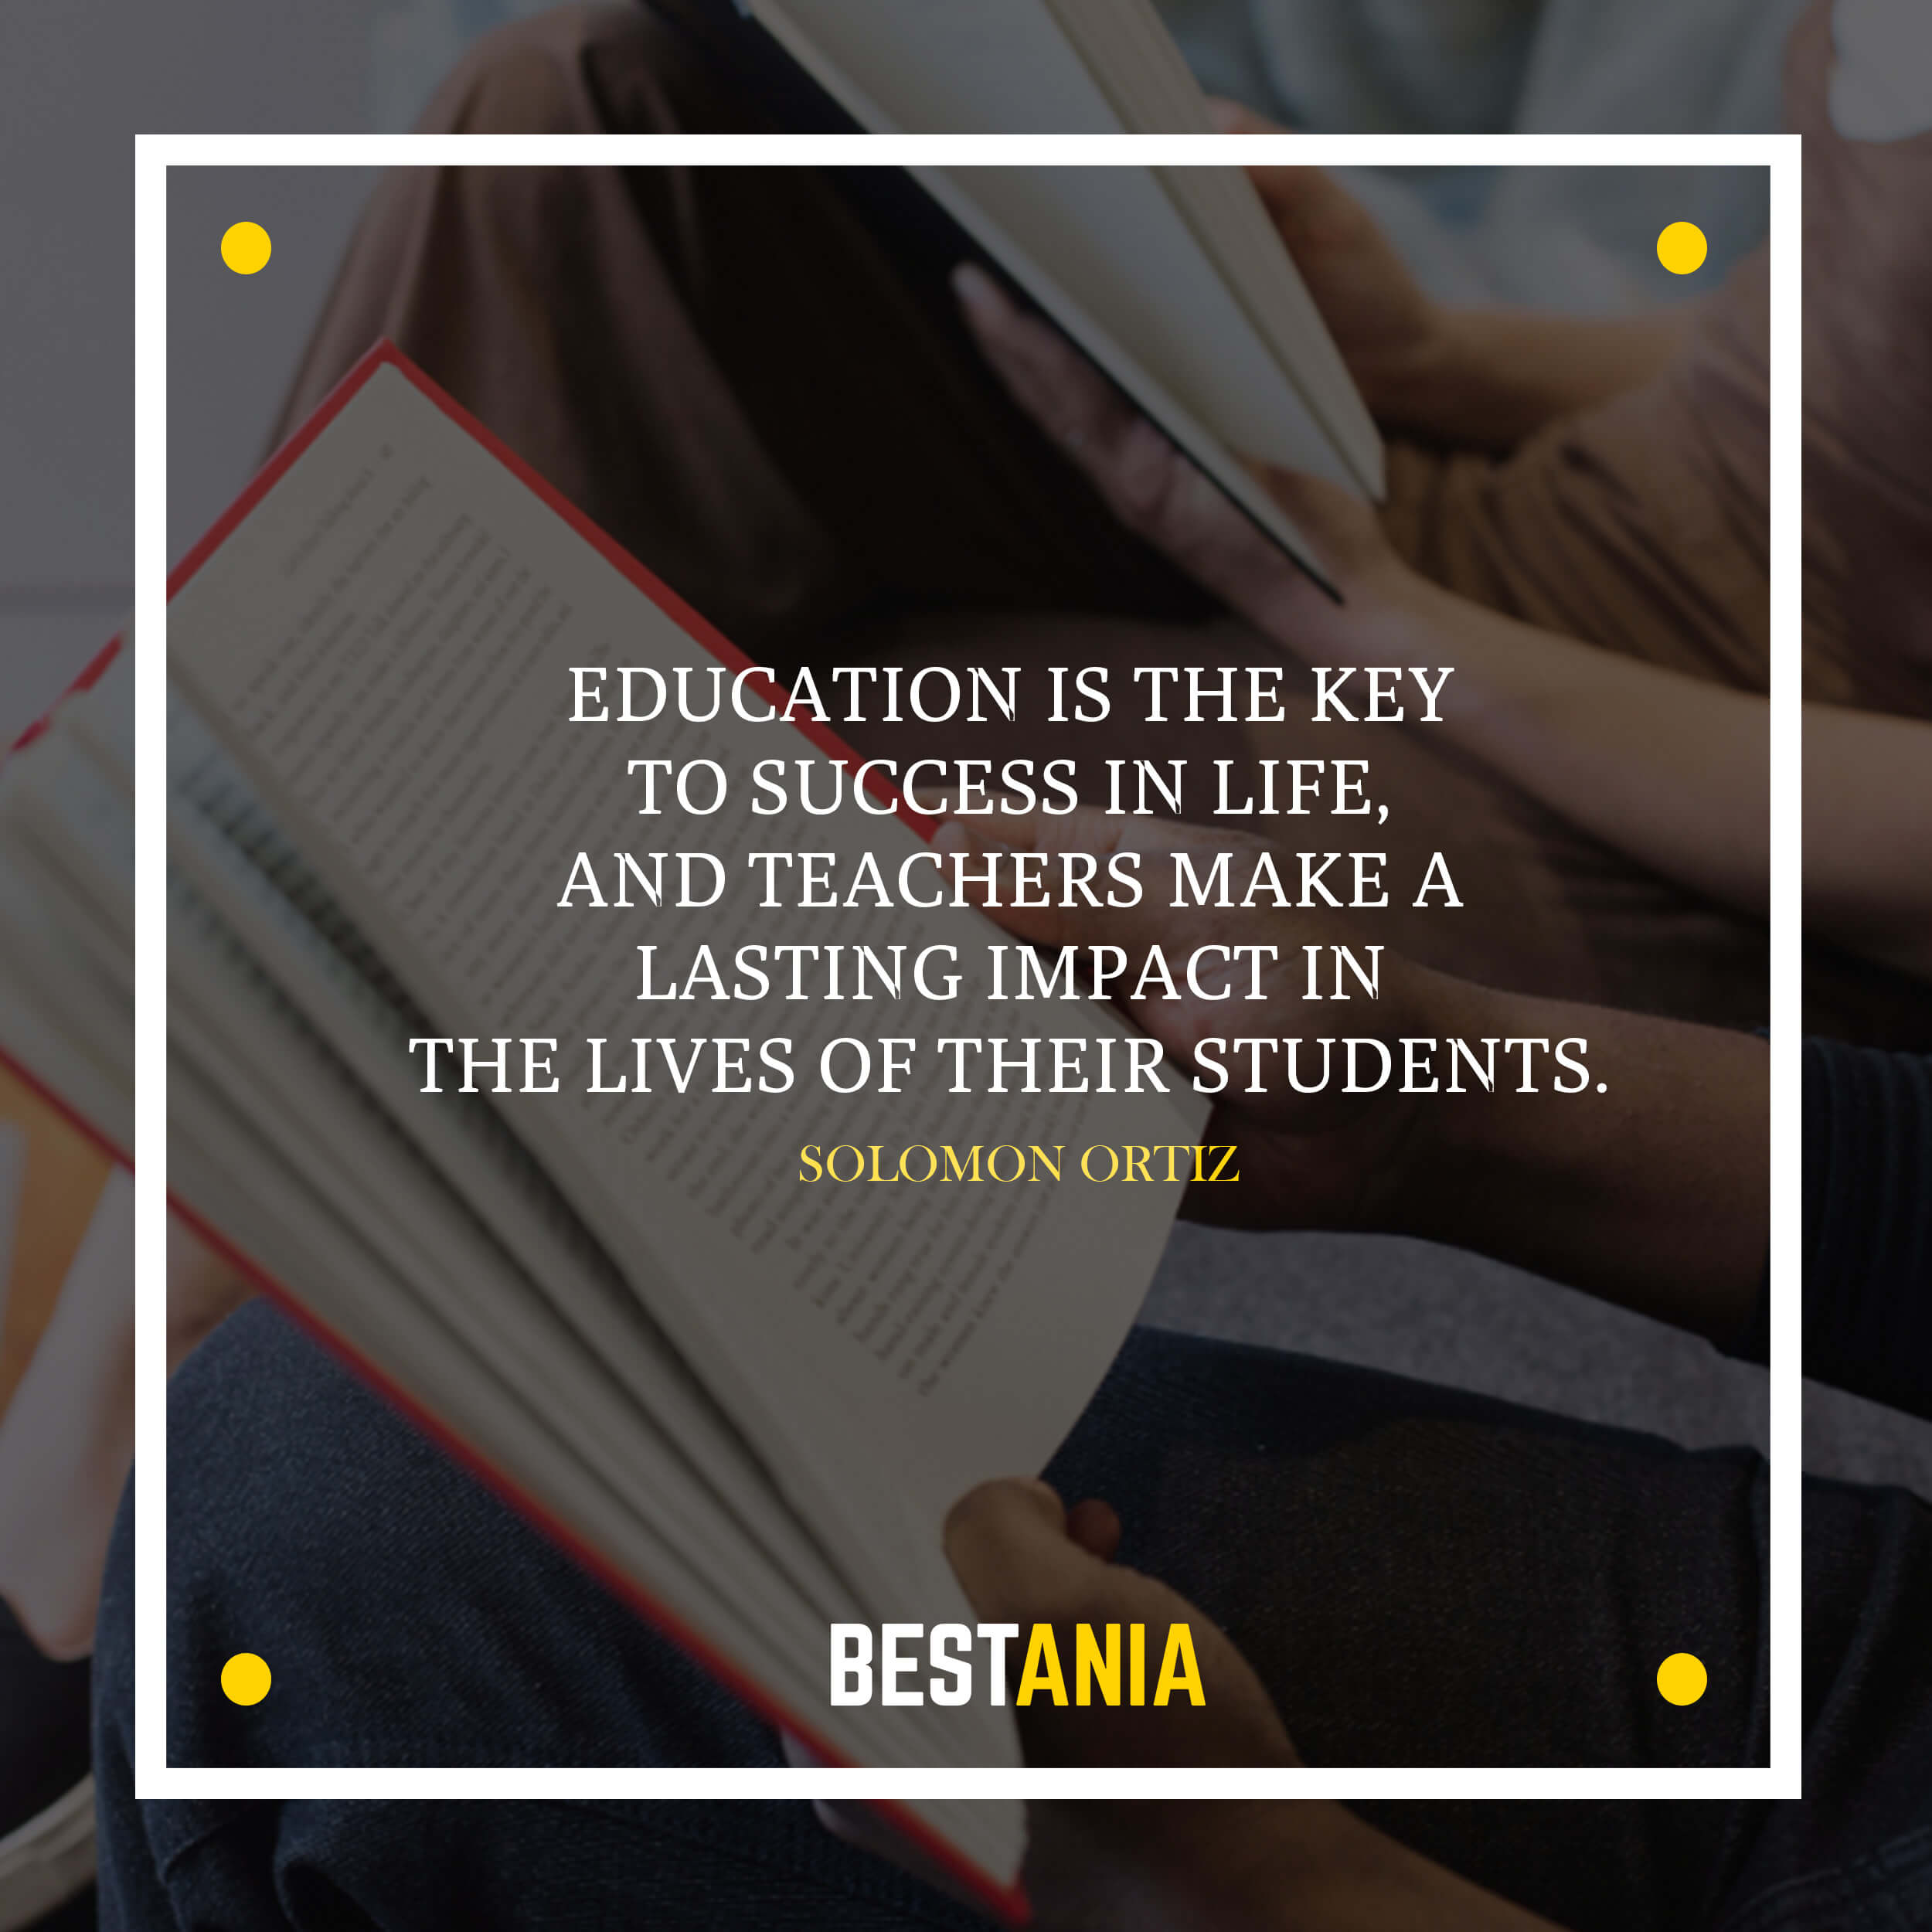 Education is the key to success in life, and teachers make a lasting impact in the lives of their students. – Solomon Ortiz